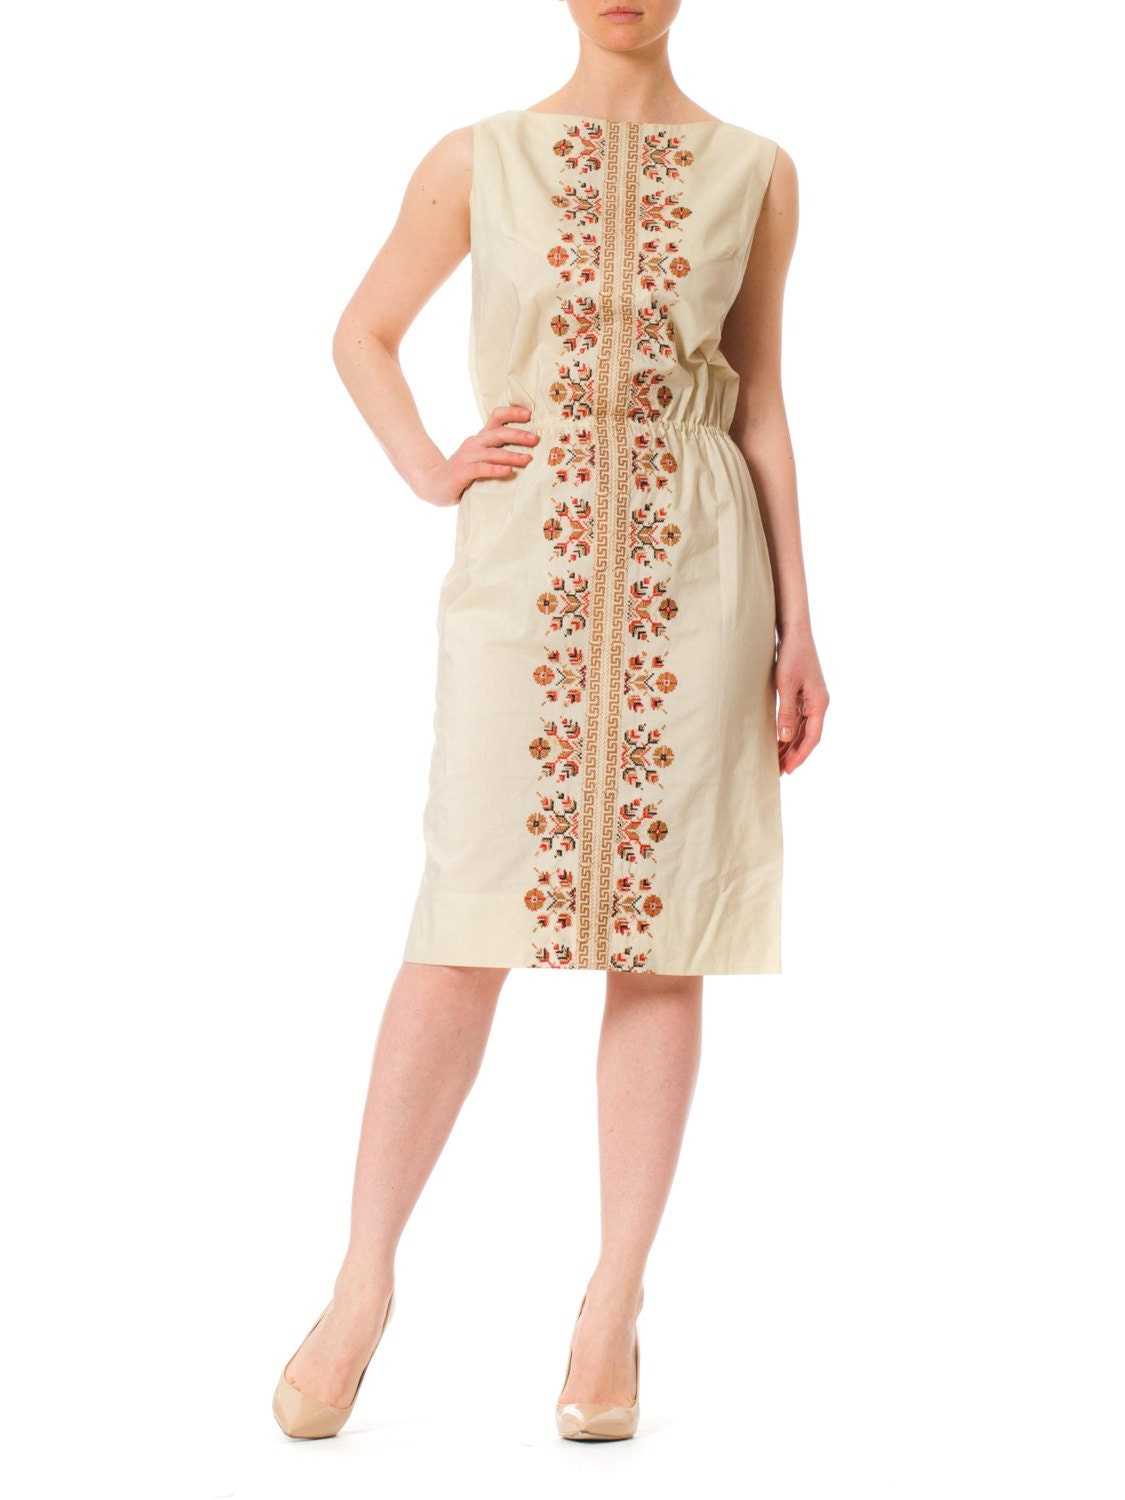 b69b133b5b6 1940s Ethnic Cross Stitch Embroidery Cotton Sleeveless Dress